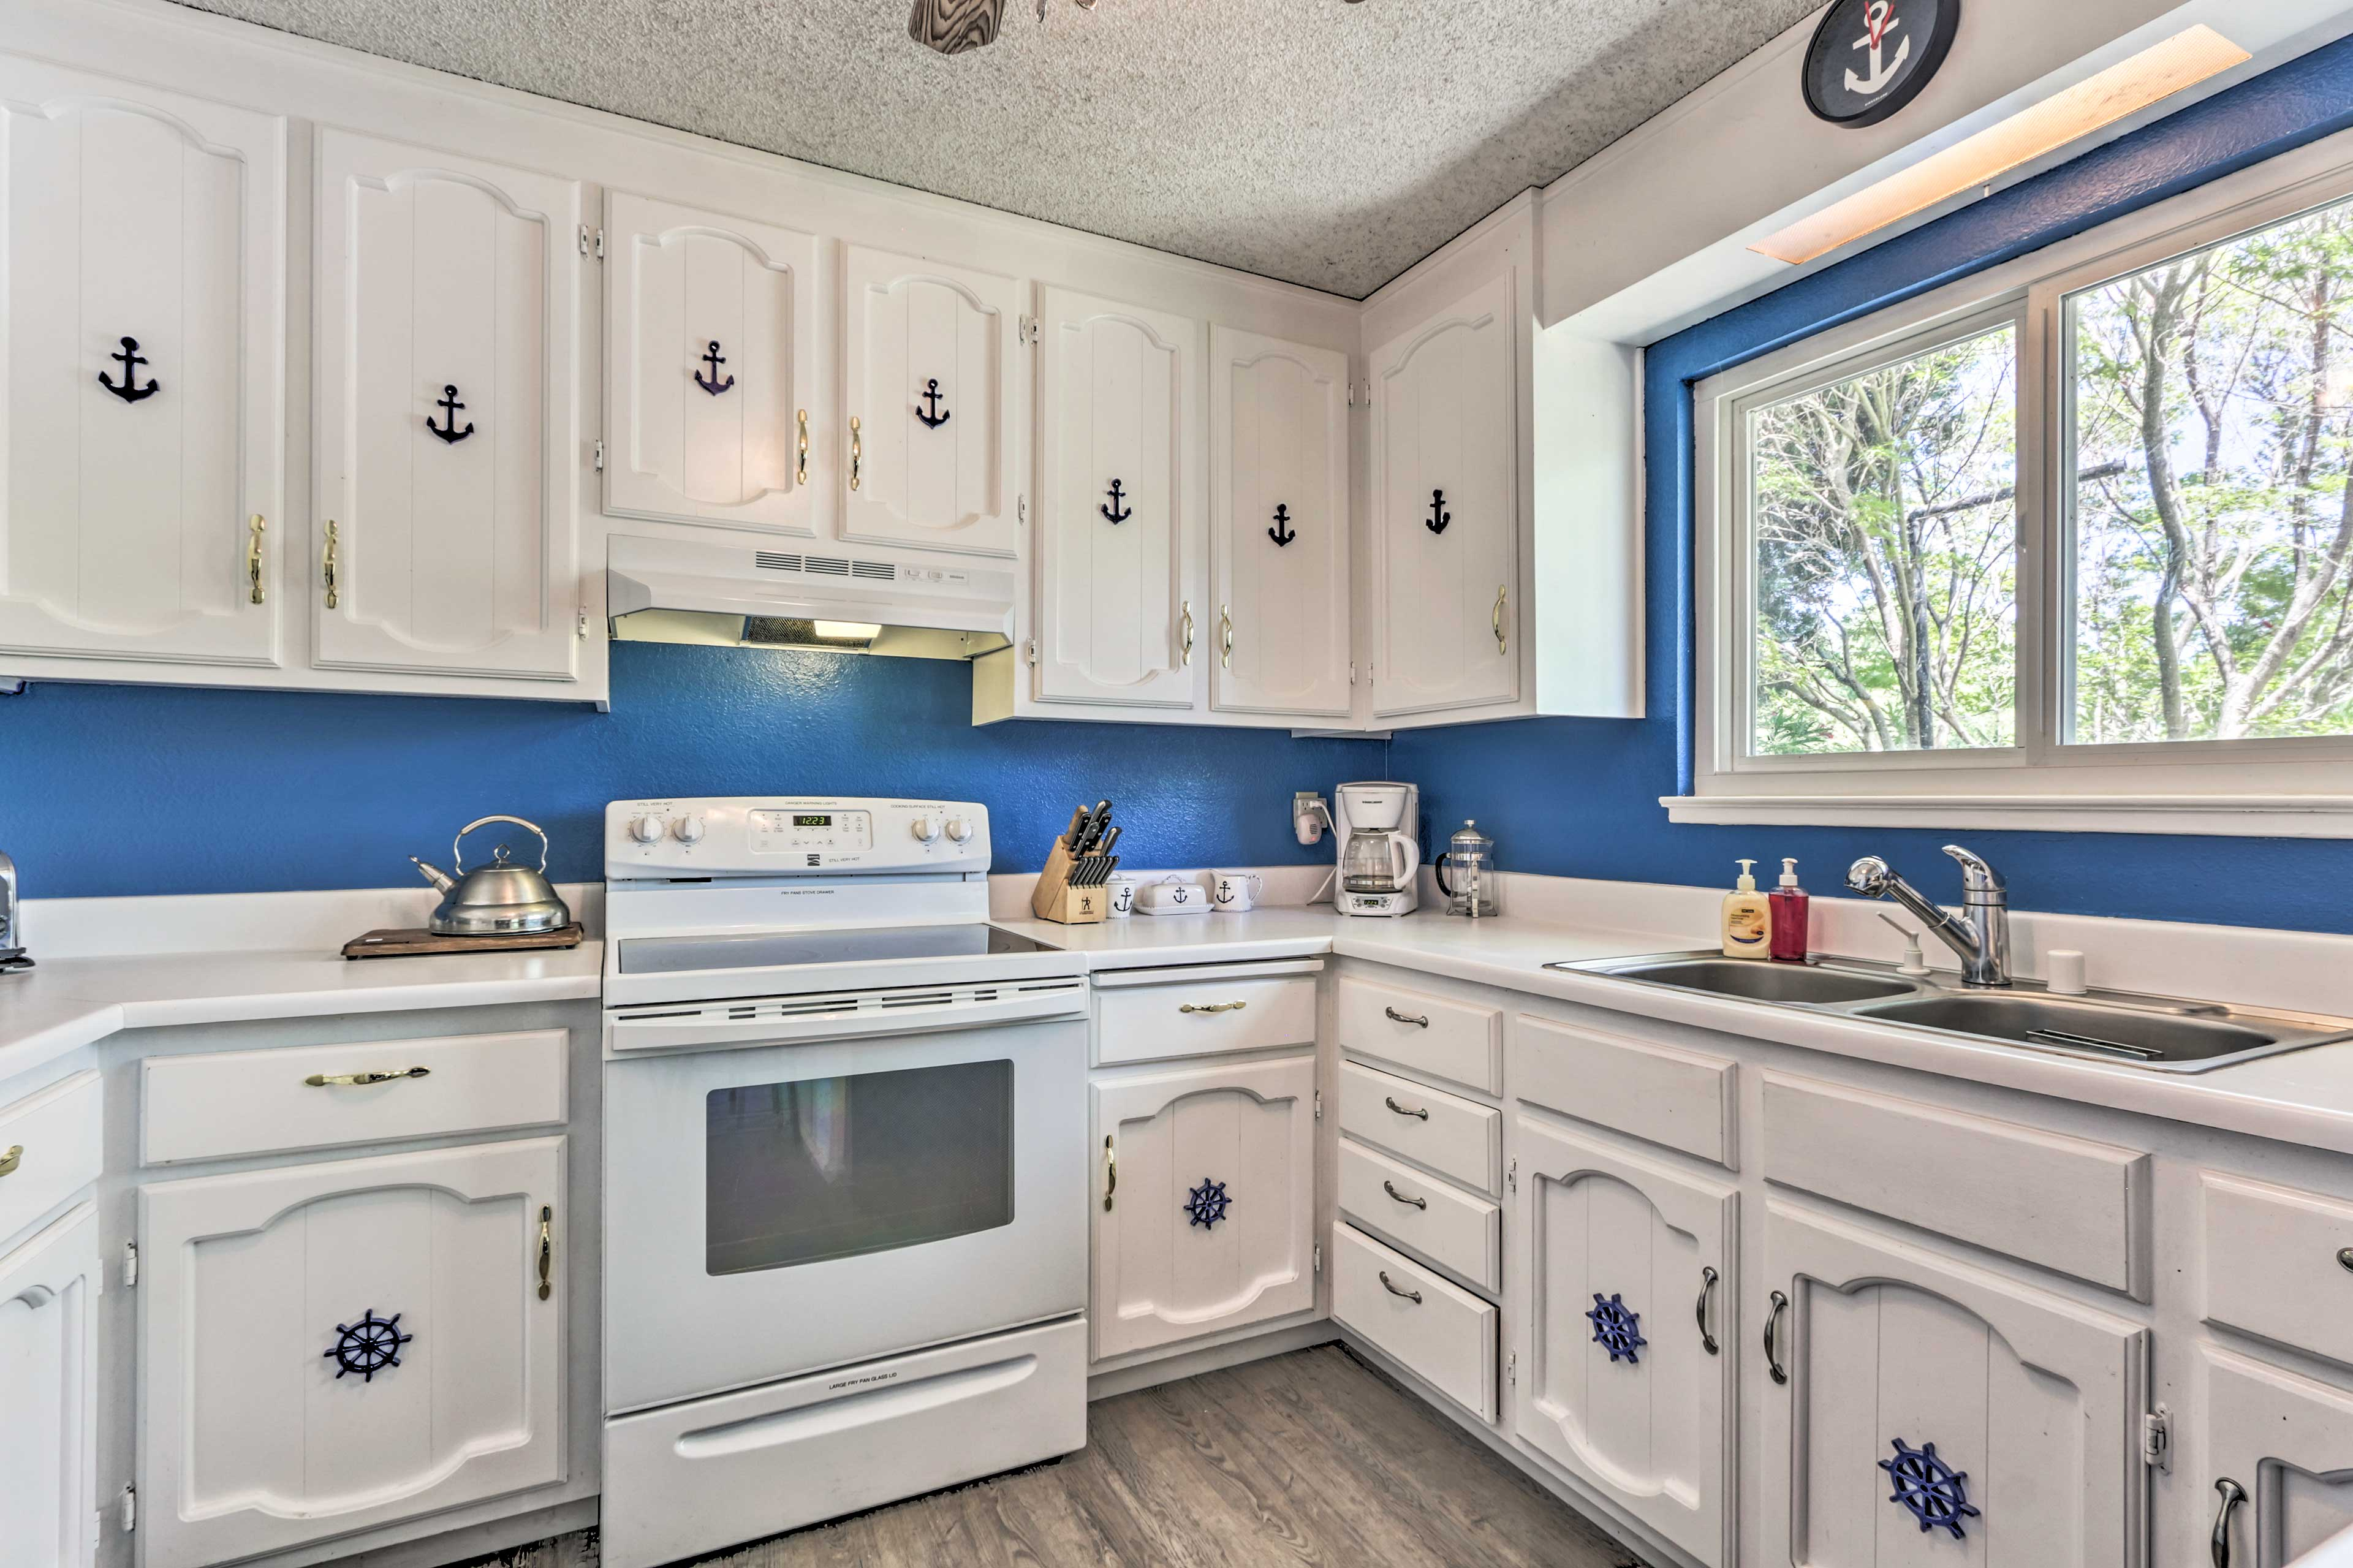 Fully Equipped Kitchen | Drip Coffee Maker | Wok | Food Processor